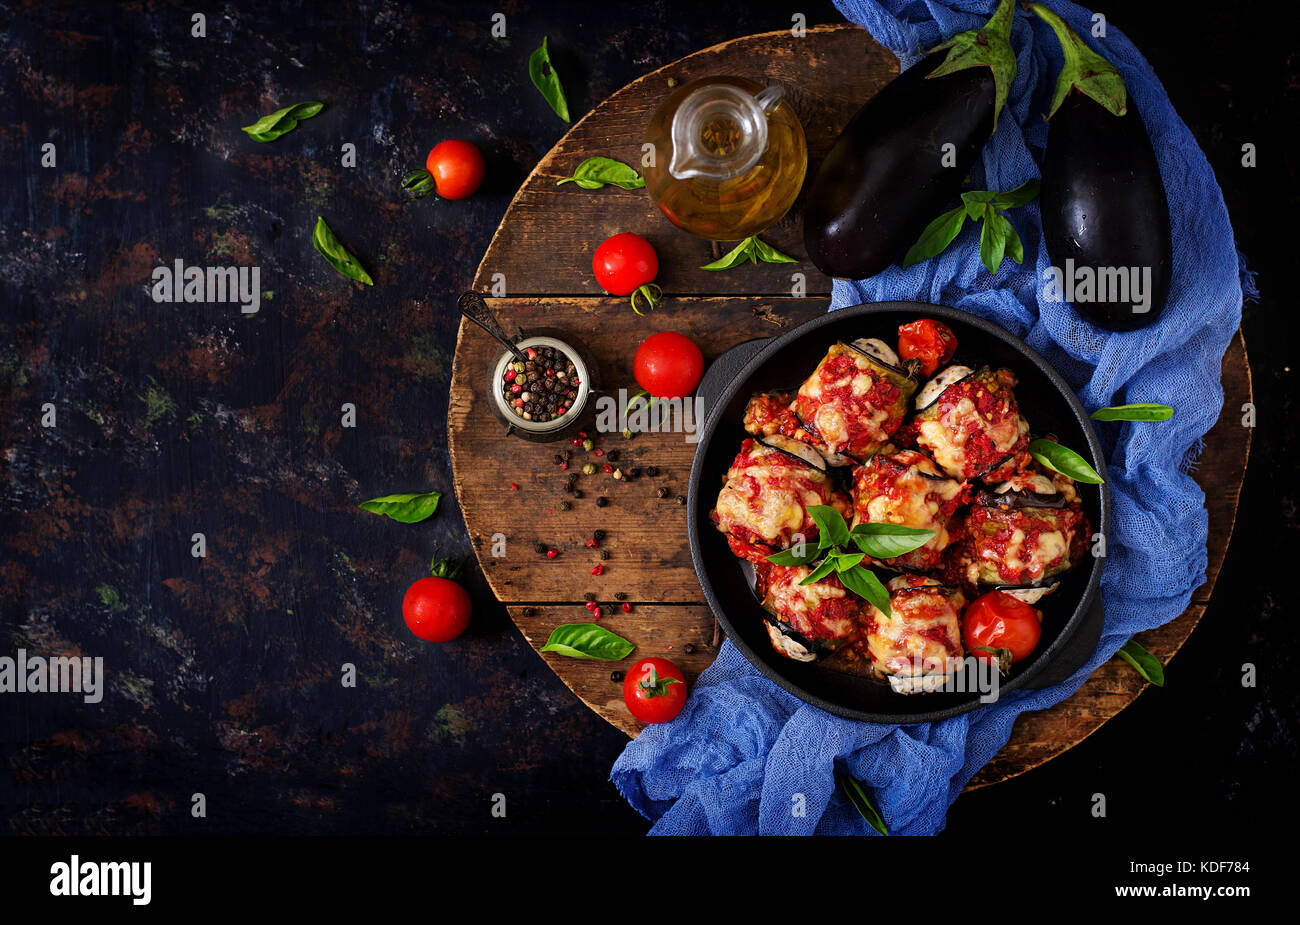 Eggplant (aubergine) rolls with meat in tomato sauce. Flat lay. Top view - Stock Image